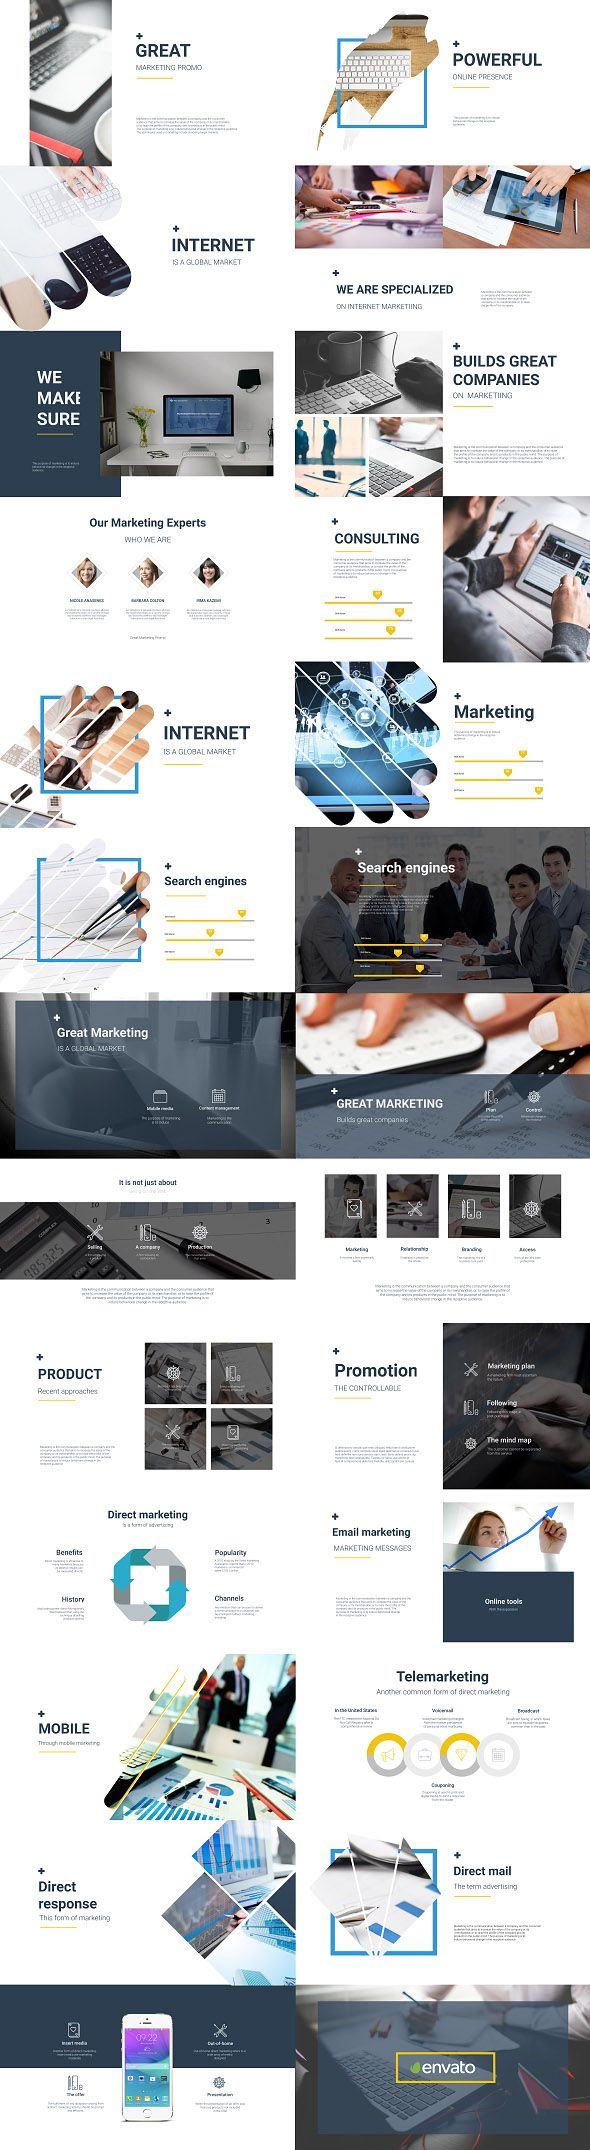 Business Marketer Flat Corporate Presentation Buy Business And